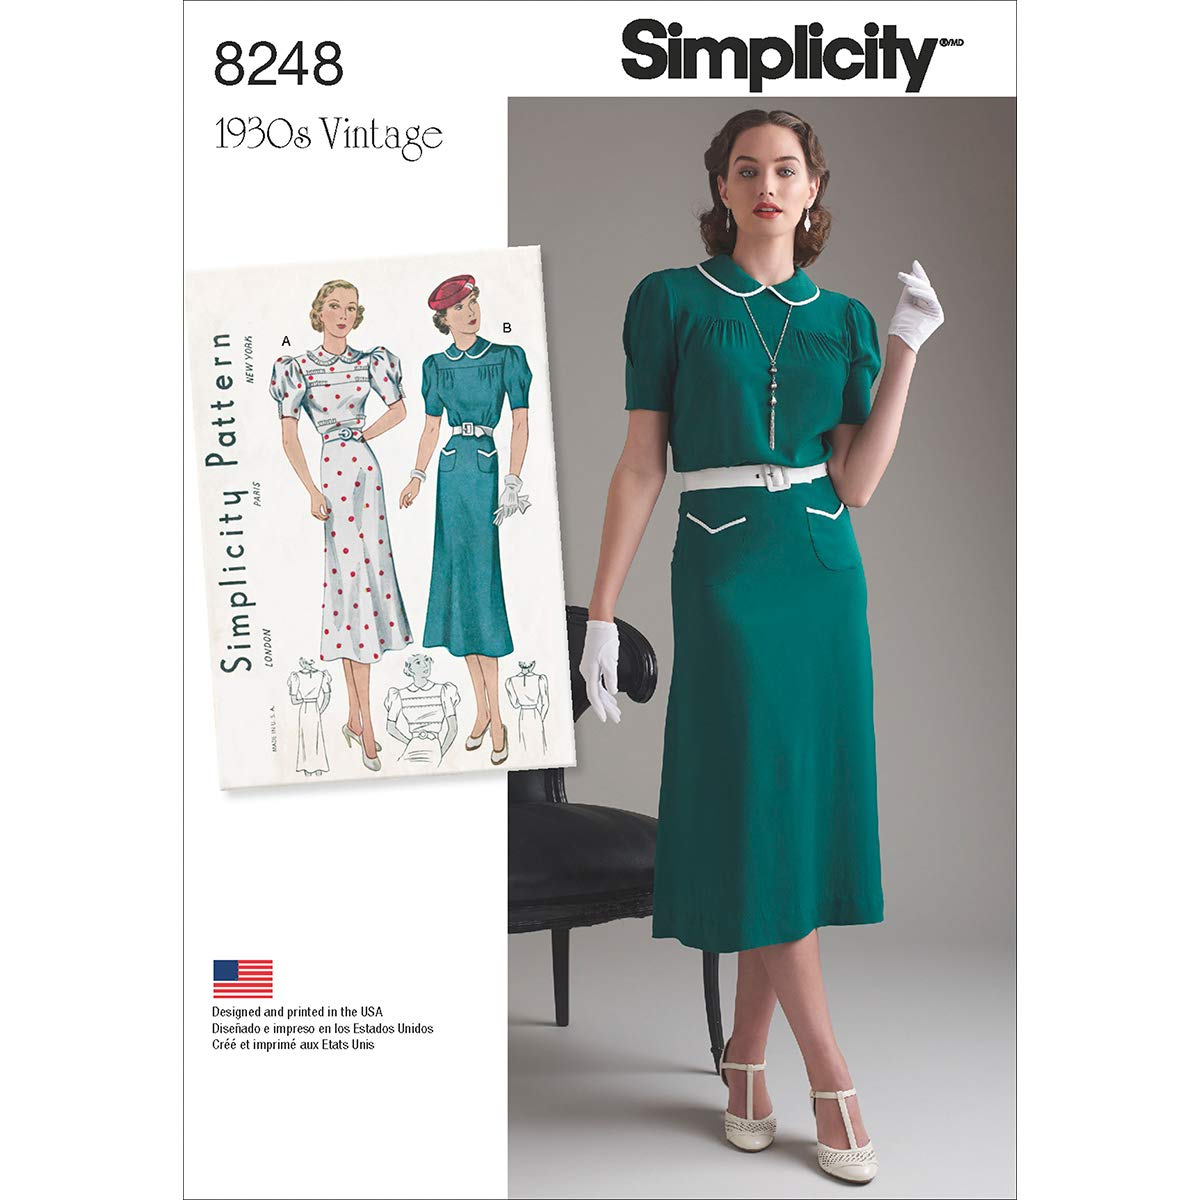 1930s Sewing Patterns- Dresses, Pants, Tops Simplicity Vintage Sewing Template 8248 1930s Vintage Dress Sewing Pattern 2 Styles Sizes 12-20 $9.65 AT vintagedancer.com